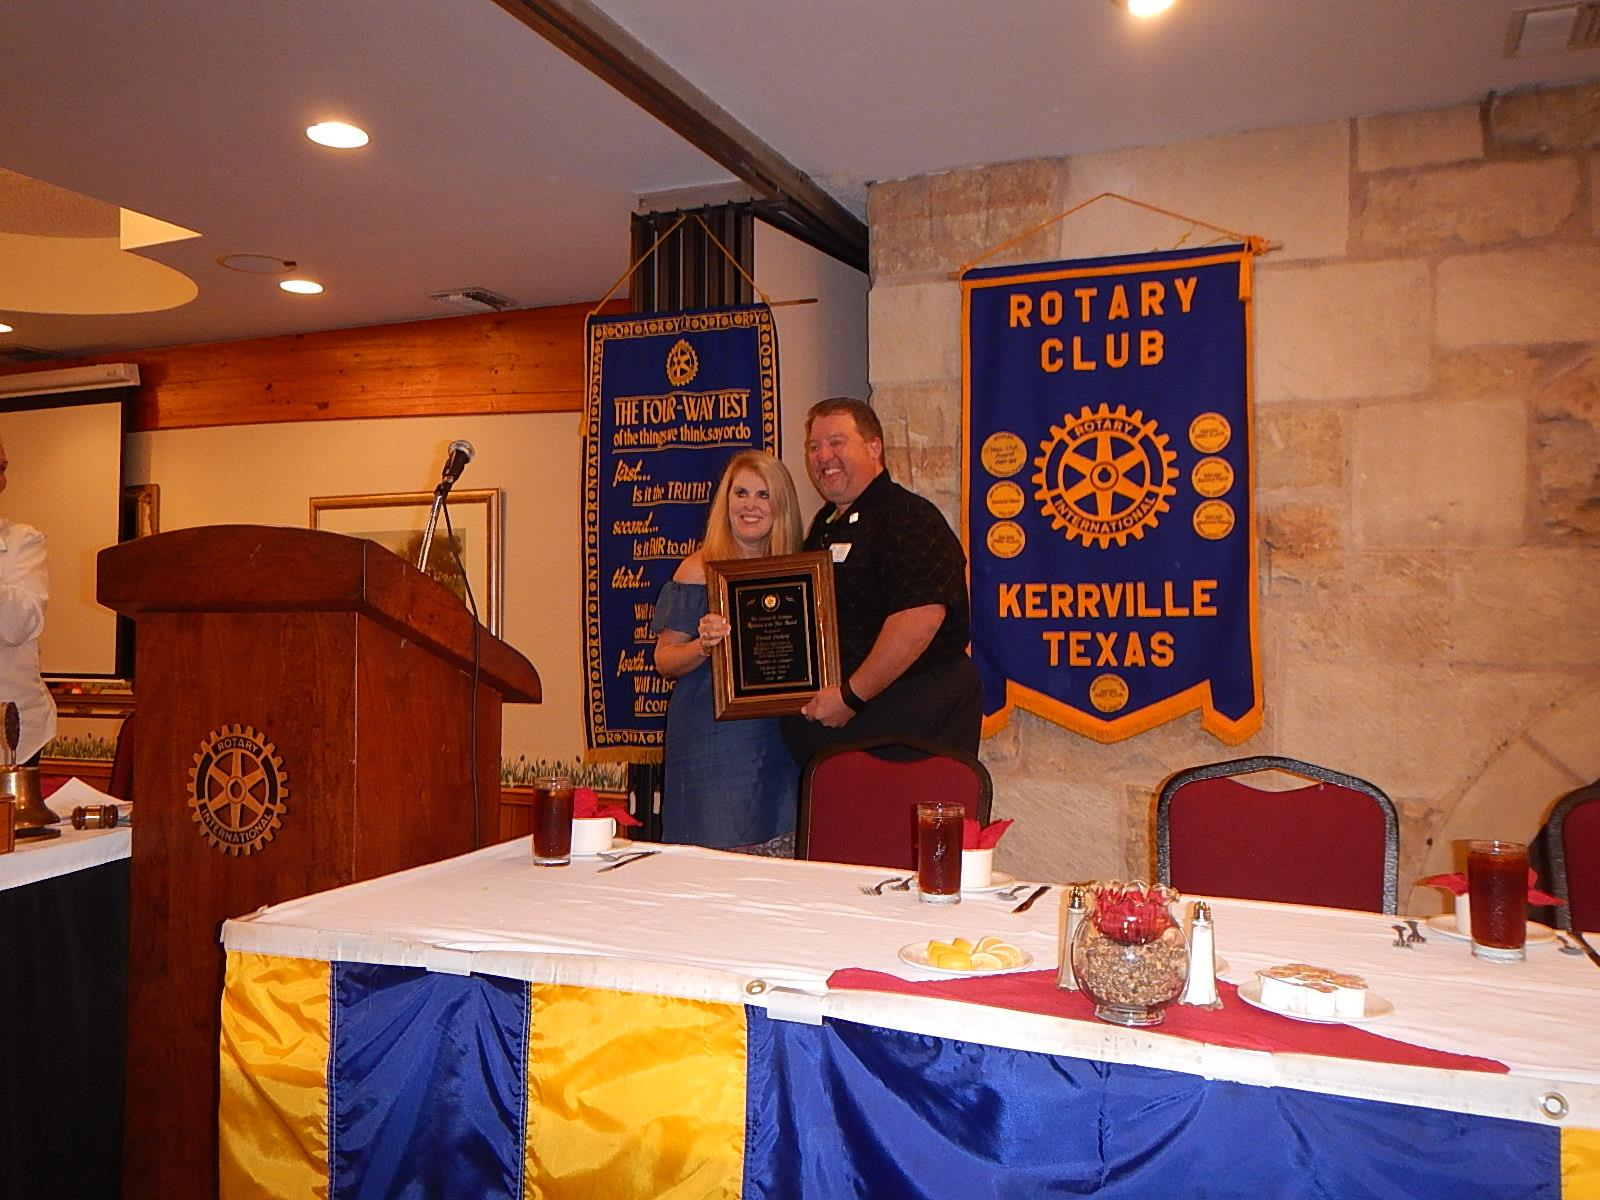 Cindy McNeely And Crystal Dockery Were Selected As Co Rotarians Of The  Year. Cindy Spearheaded The Pints For Polio Event Which Raised A  Significant Amount ...